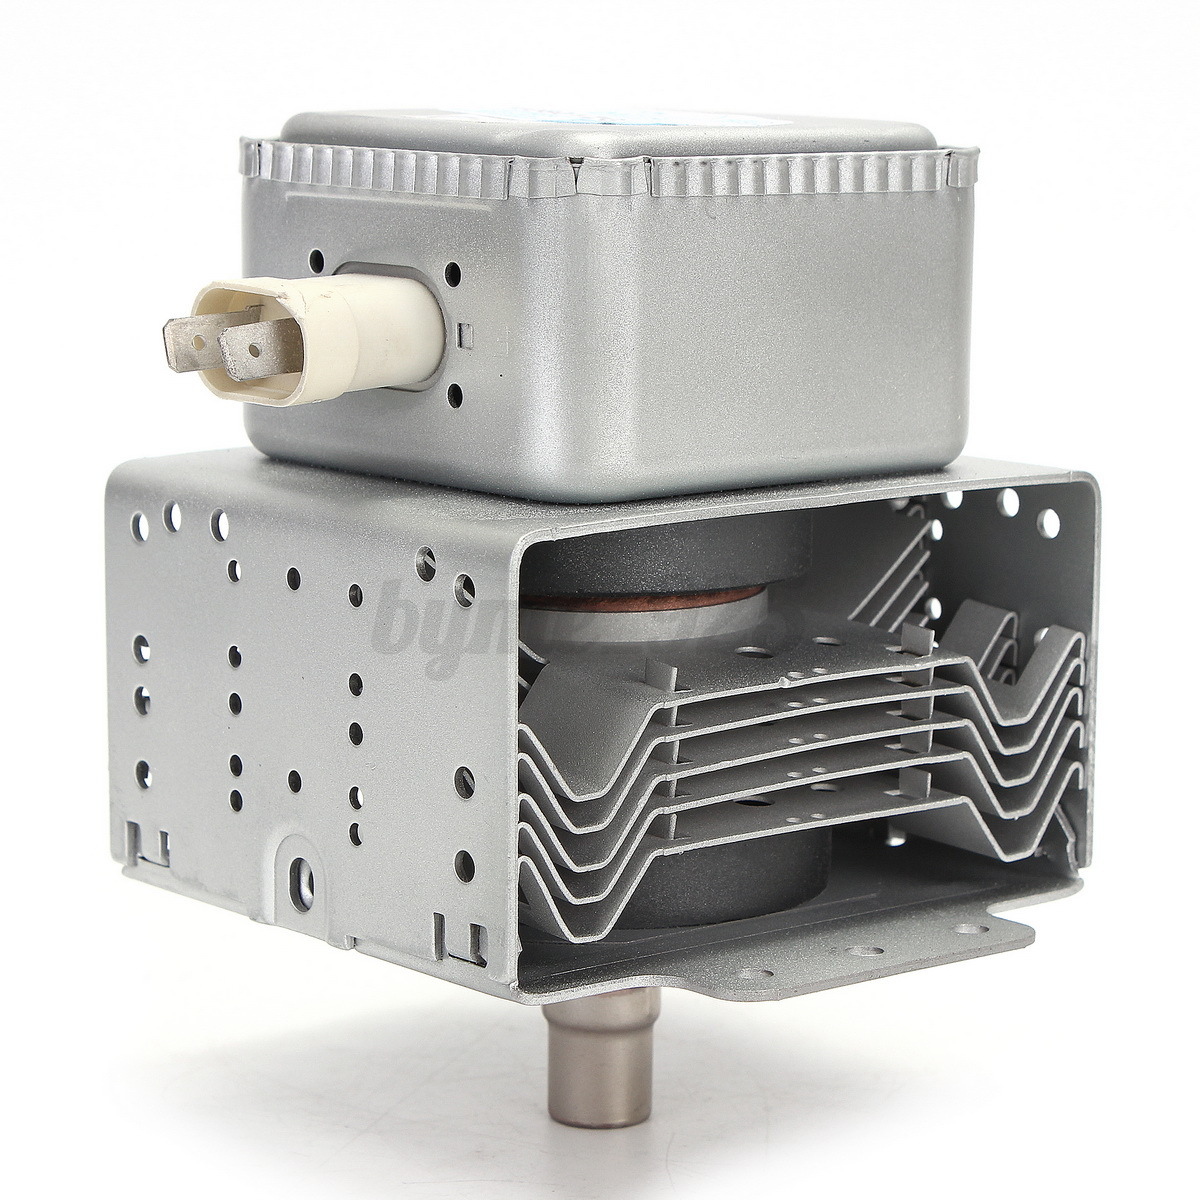 Ground Resistance Testers Hauppauge Ny : Kinds of replacement microwave oven magnetron for midea